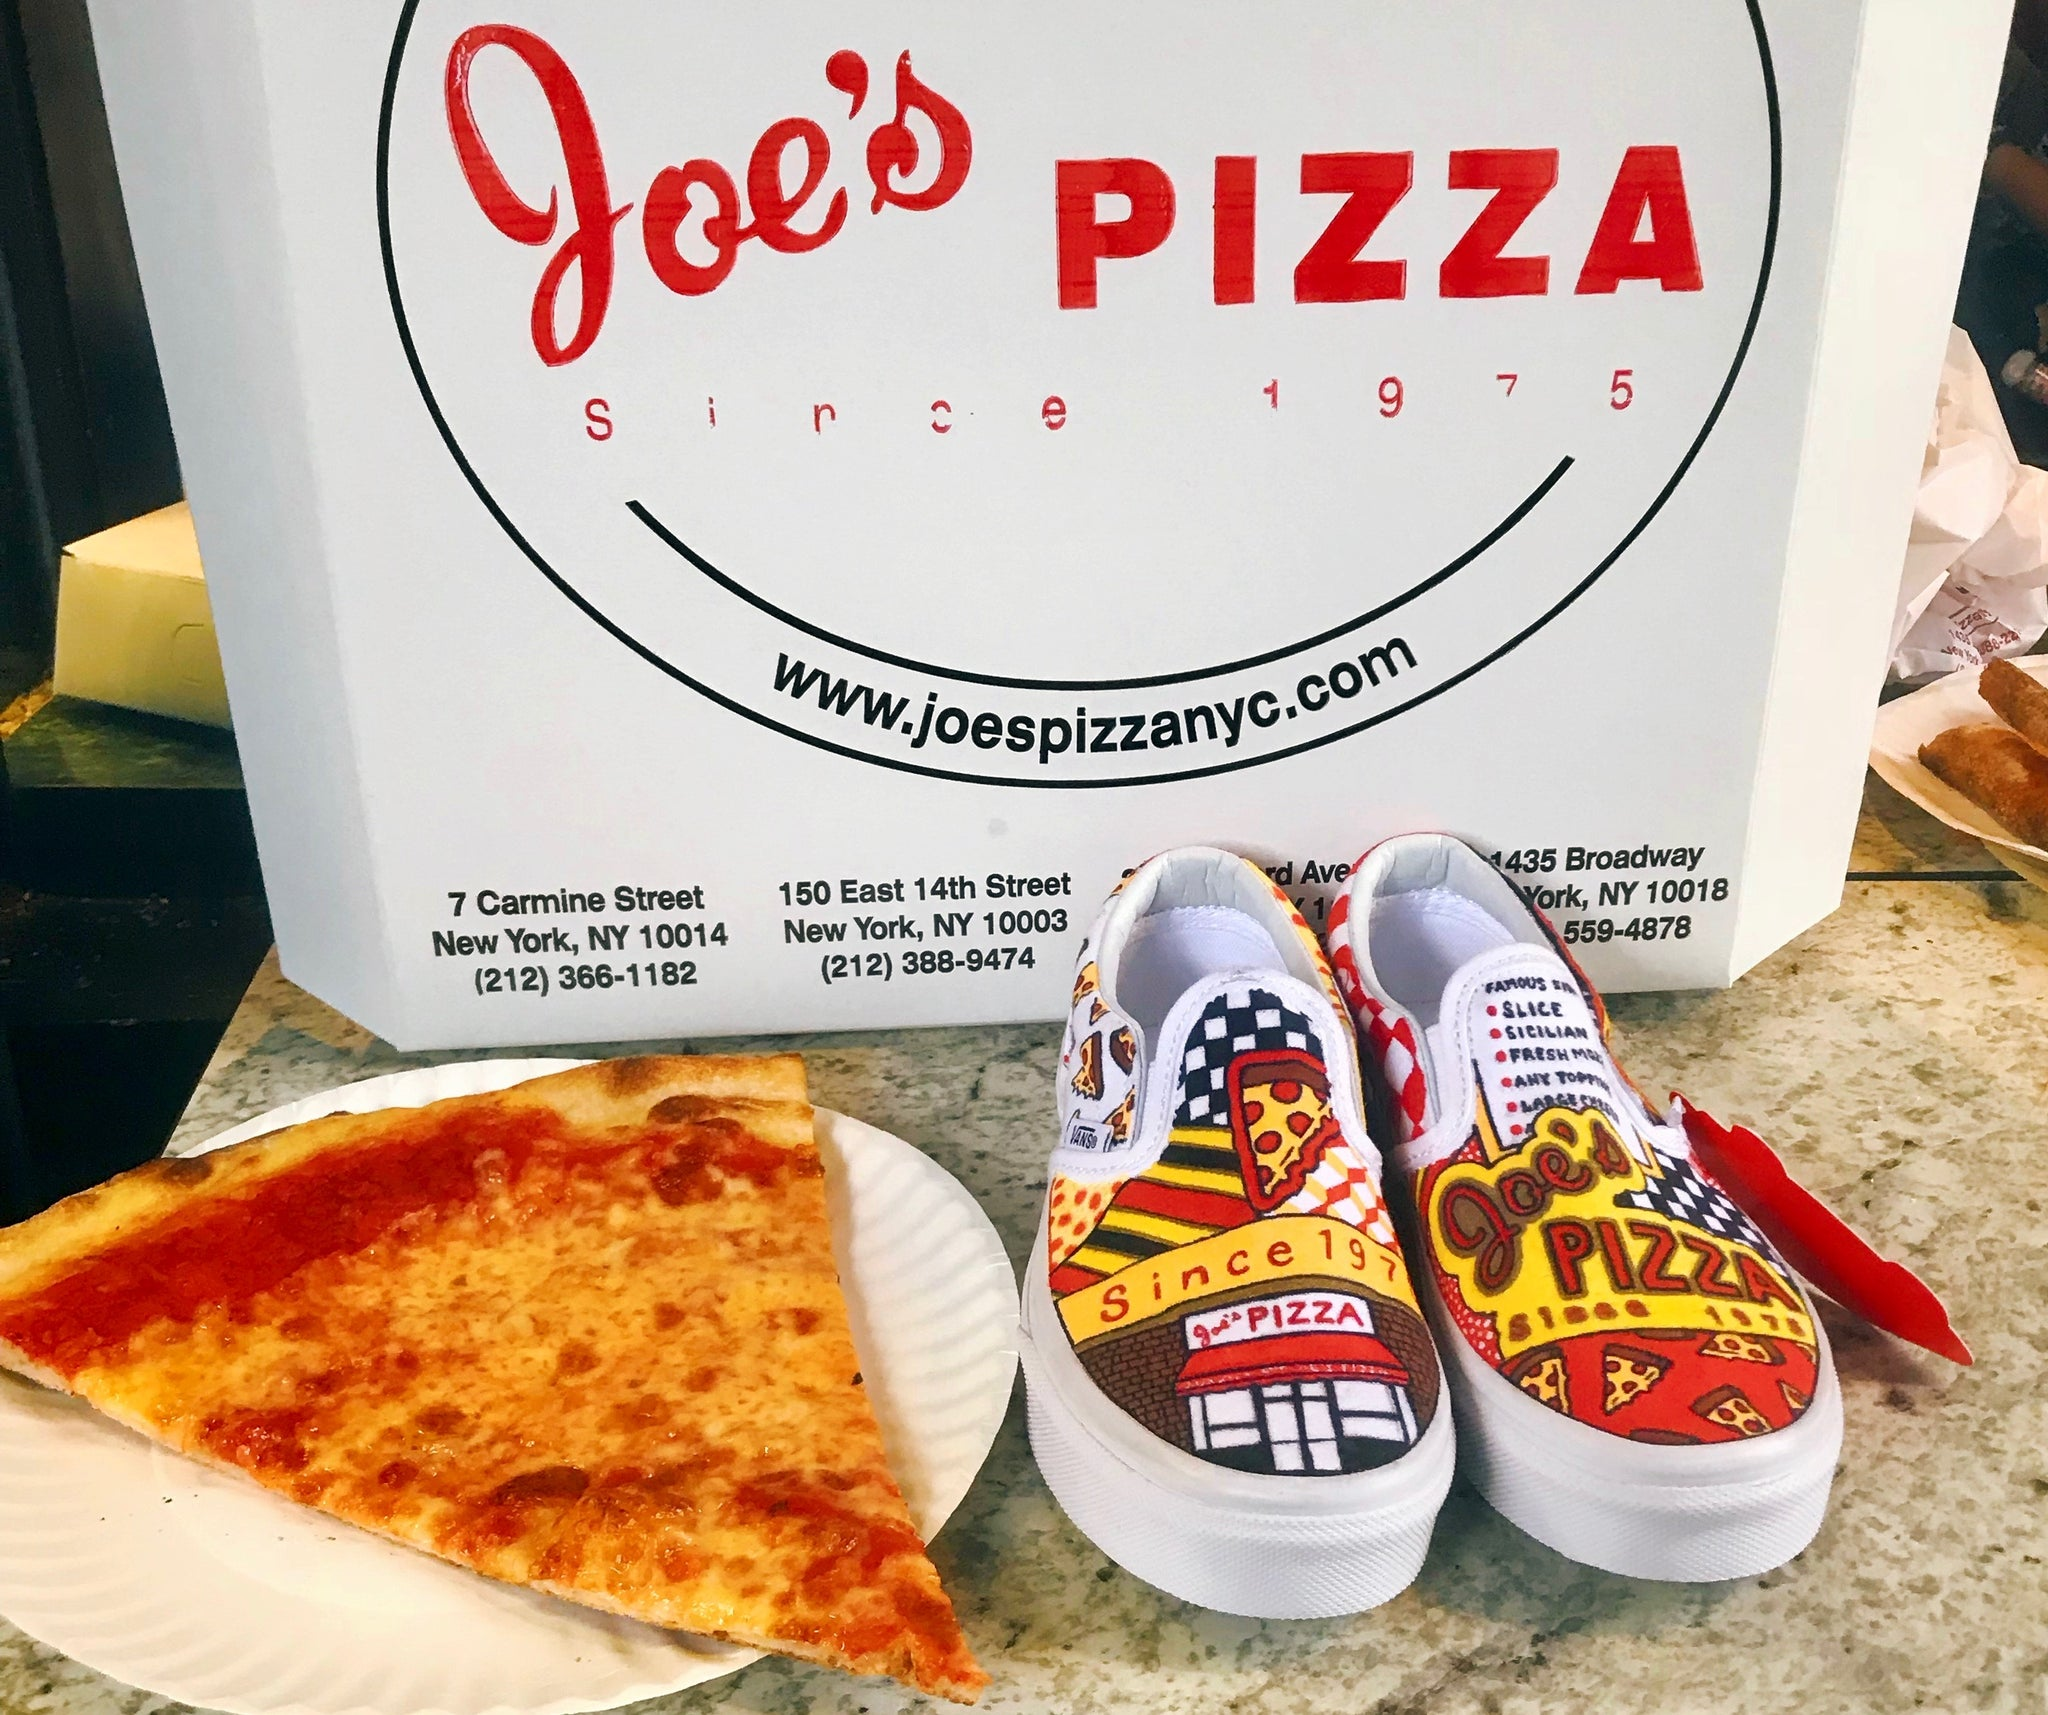 Joe's Pizza Sneakers